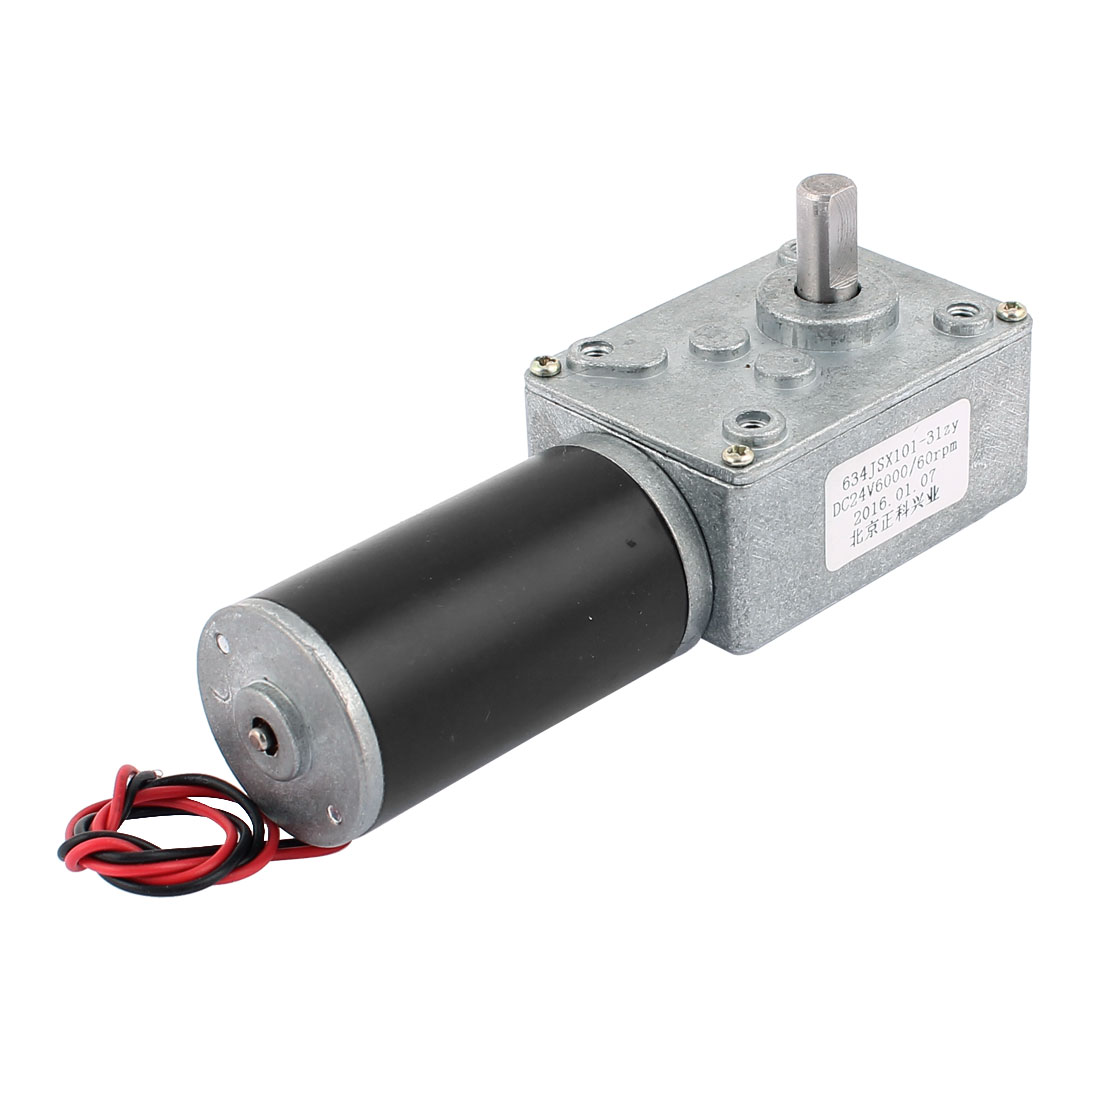 DC 24V 60RPM 8mmx14mm D-Shape Shaft Electric Power Turbo Worm Geared Motor